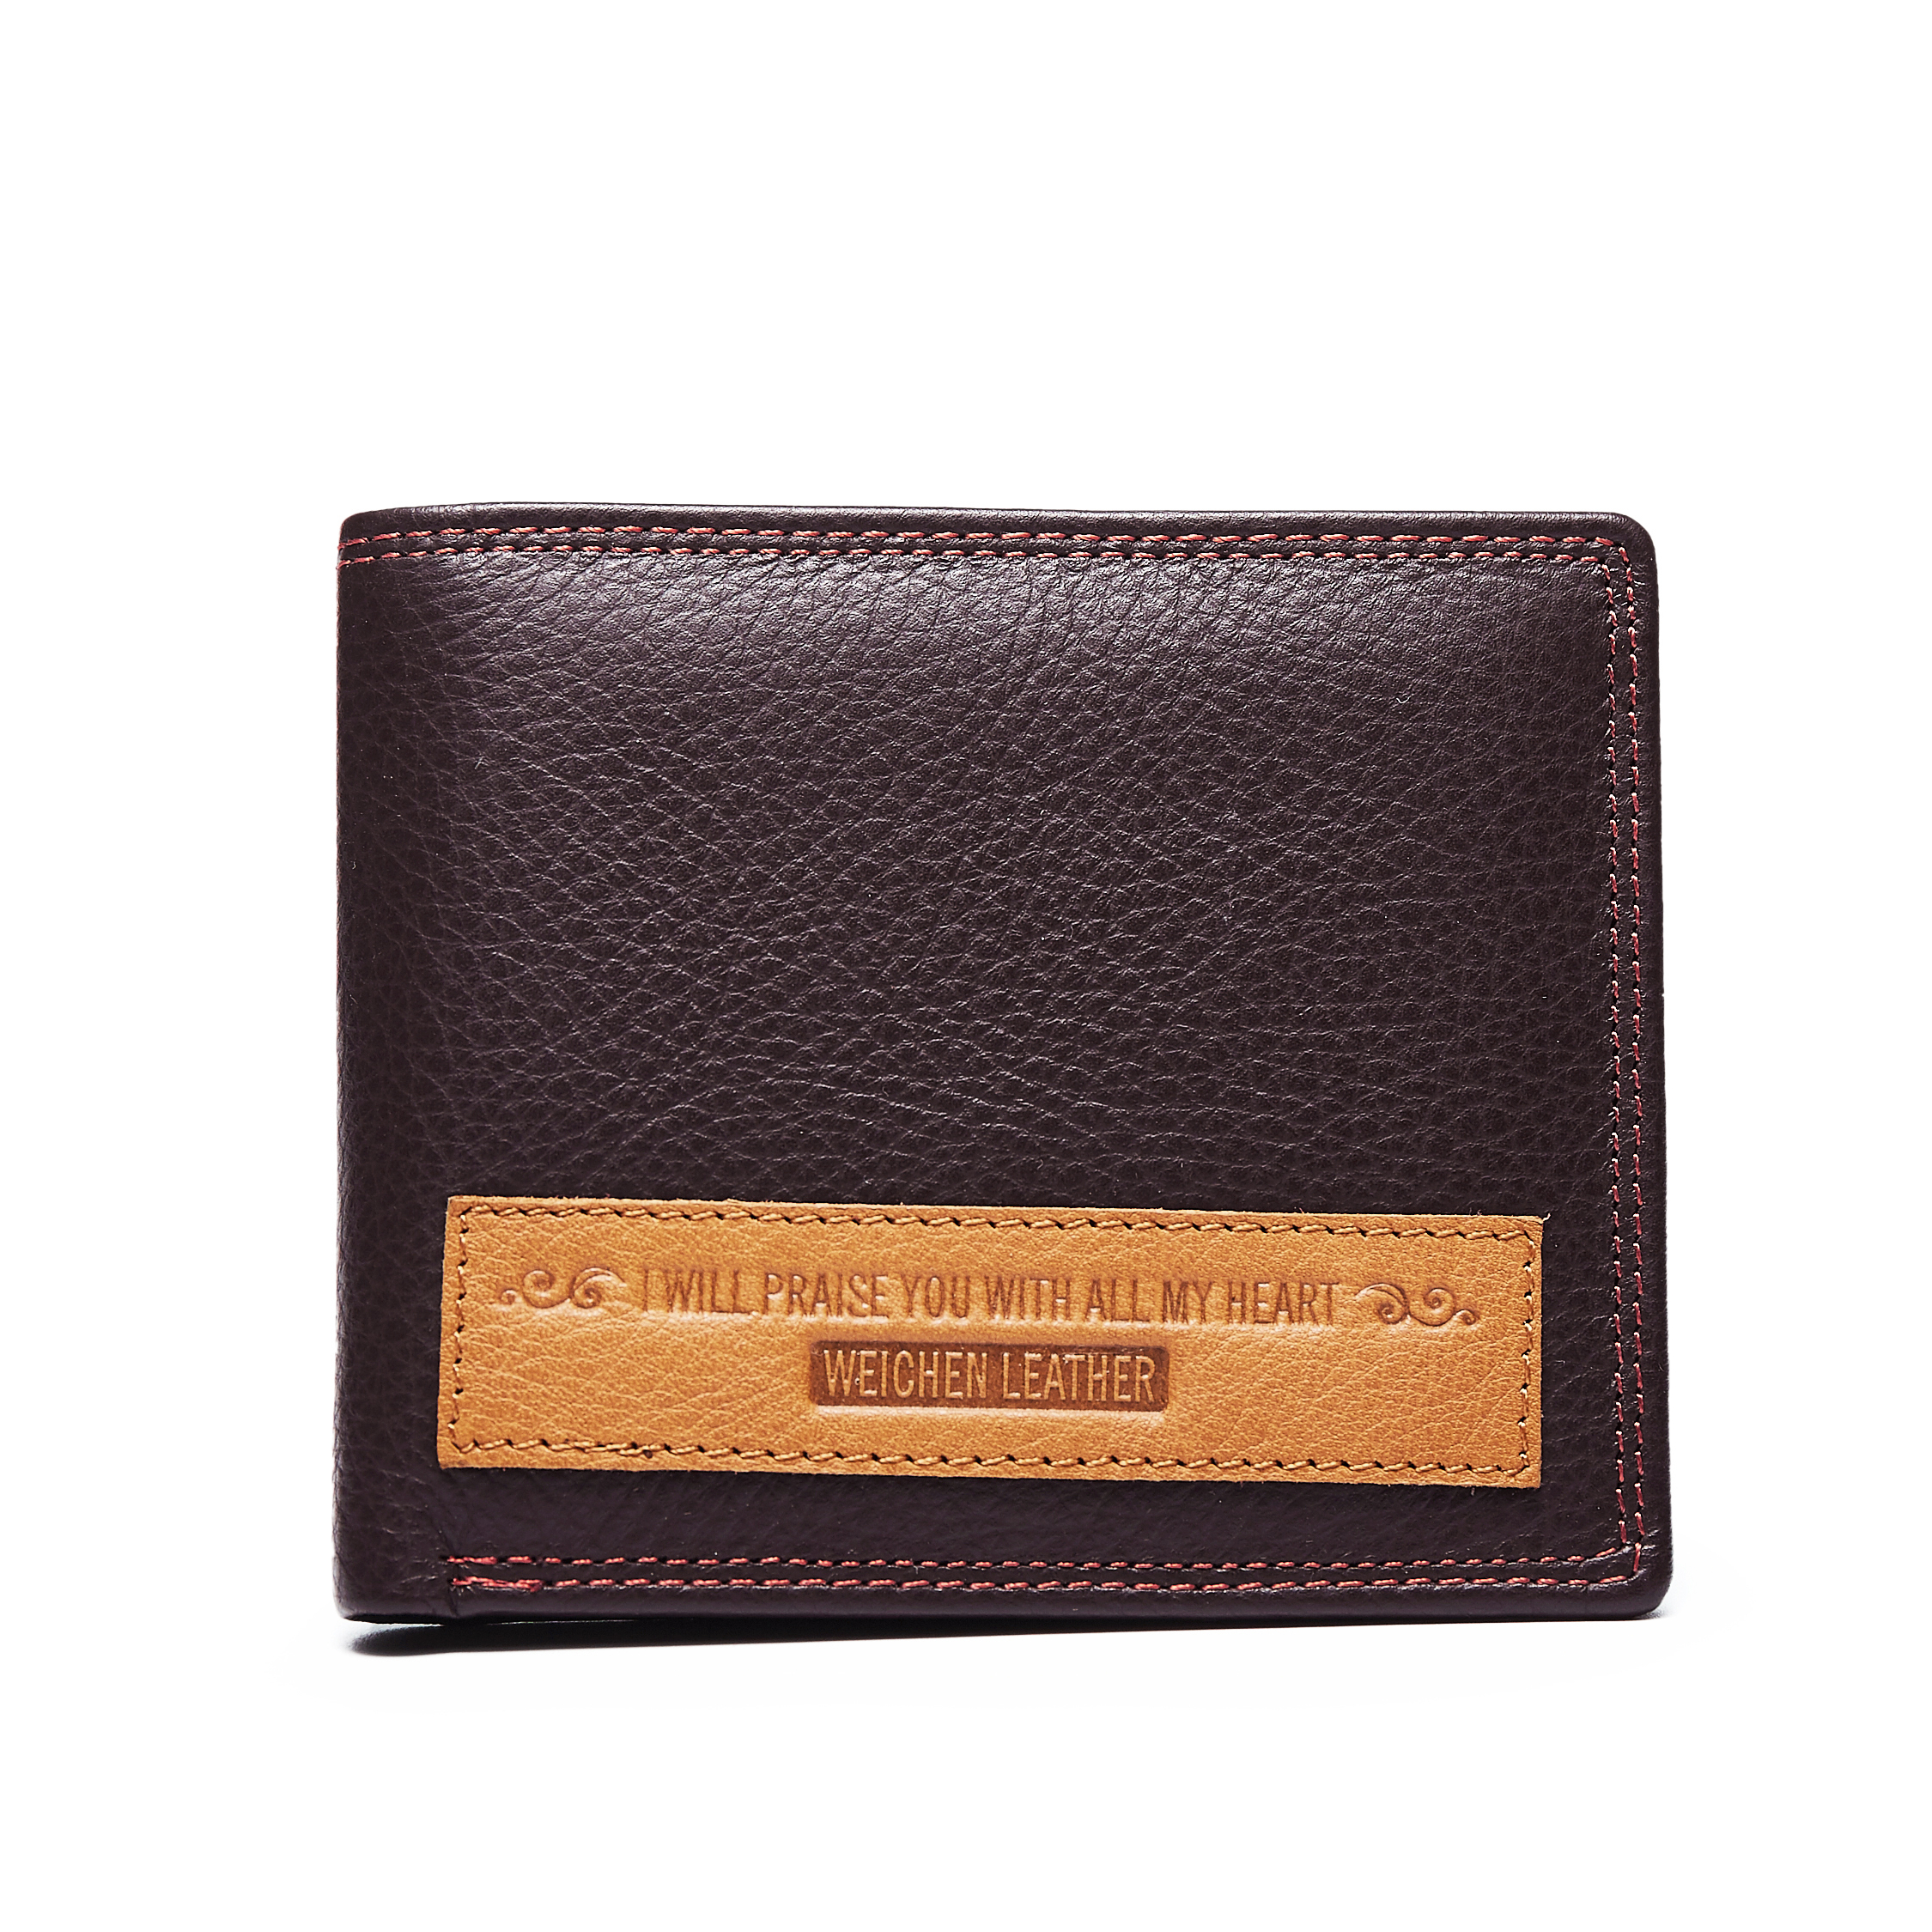 Available Fashion Bifold with Credit Card Slot Genuine Leather Wallet for <strong>Men</strong>